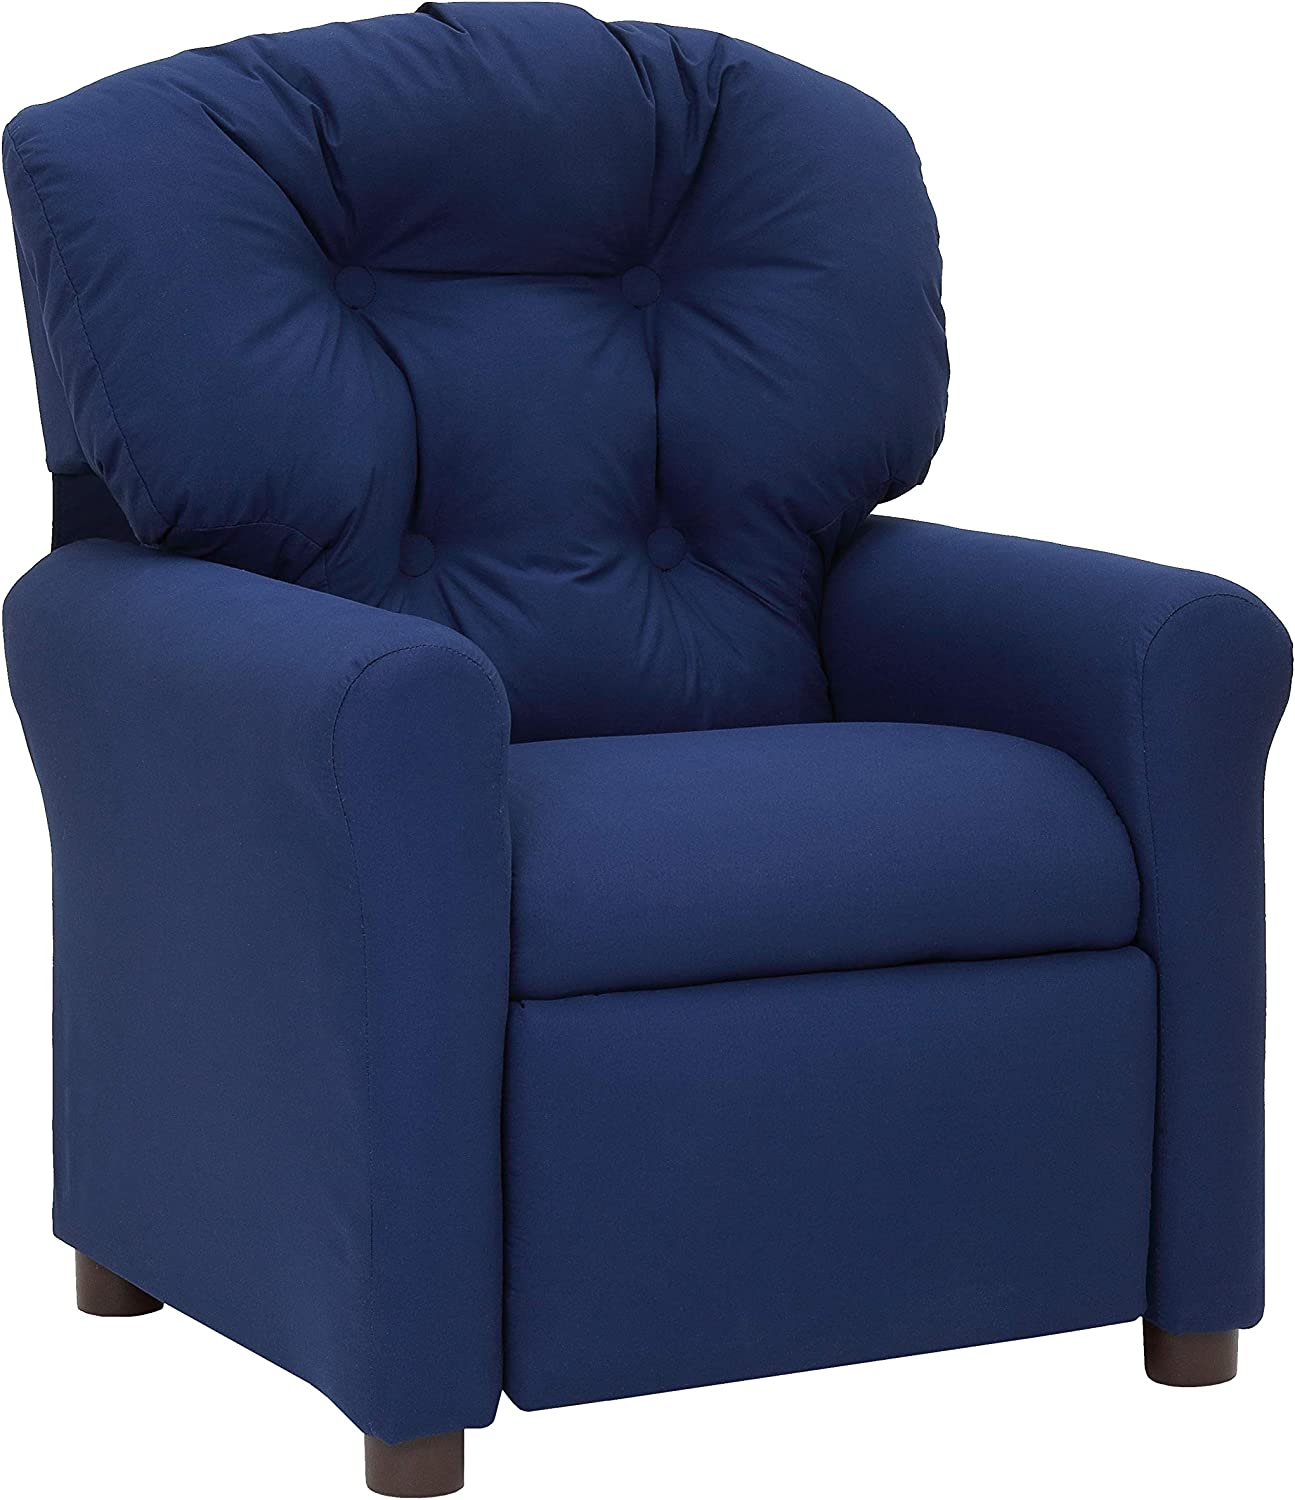 The Crew Furniture Best Traditional Recliner Under Budget.